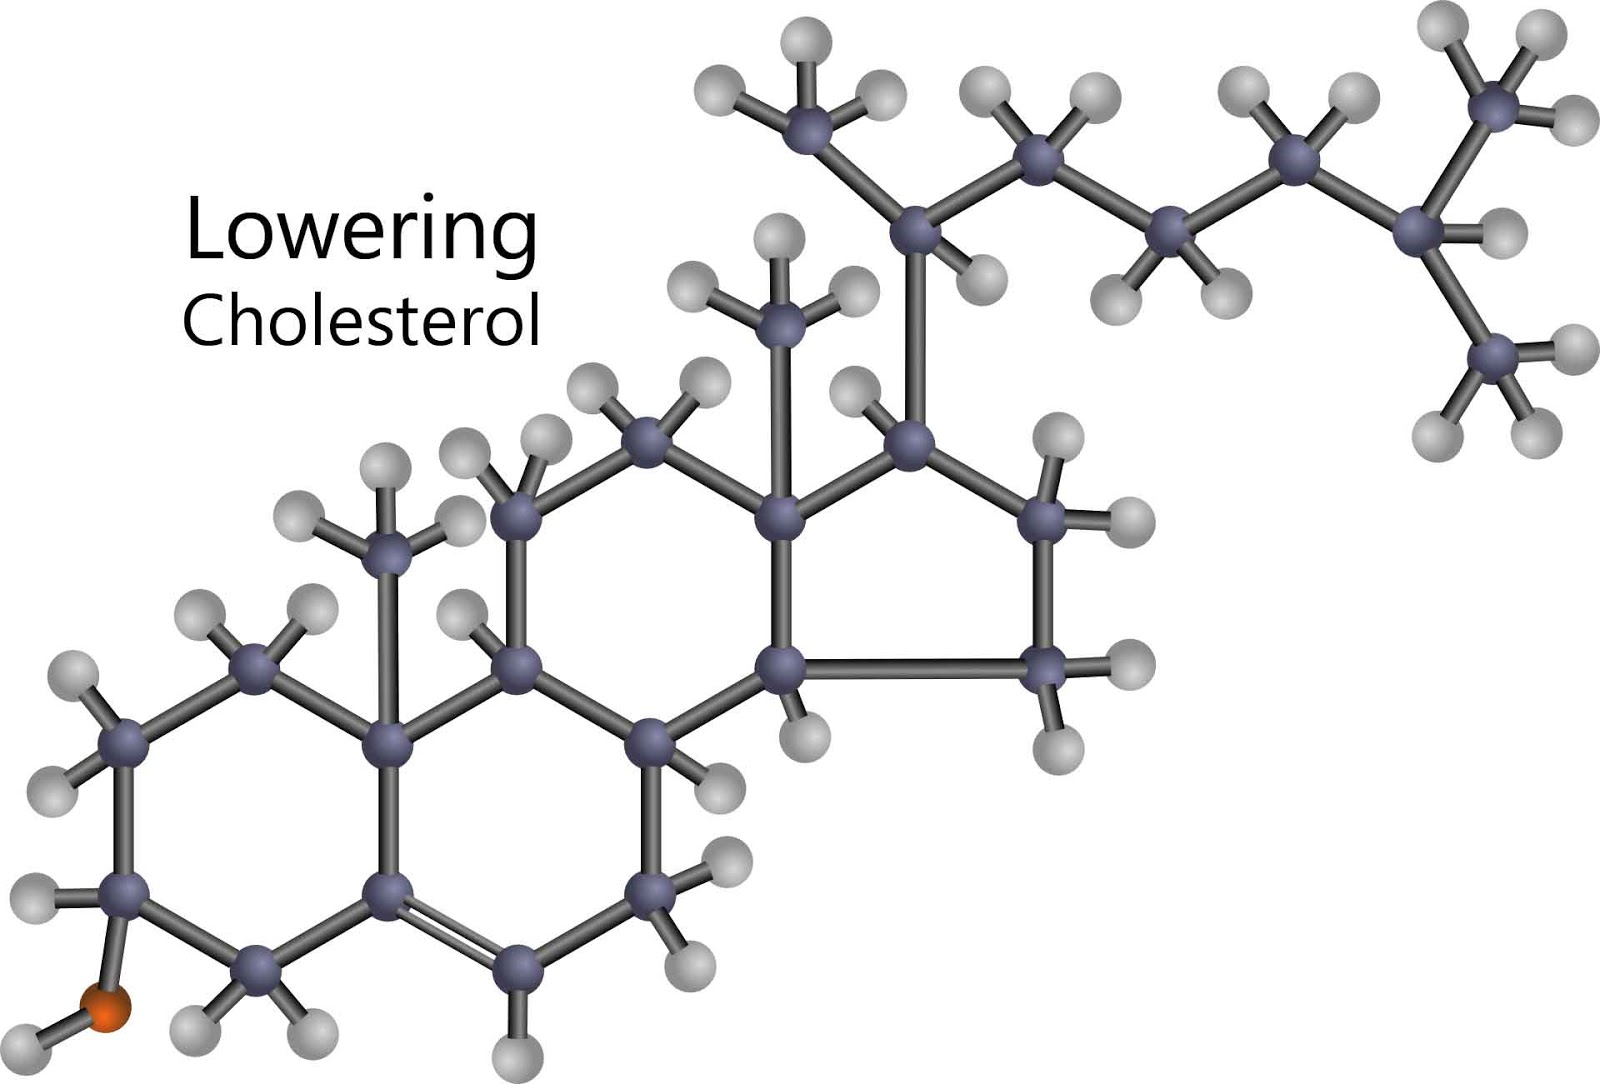 How to Lower LDL Cholesterol Naturally